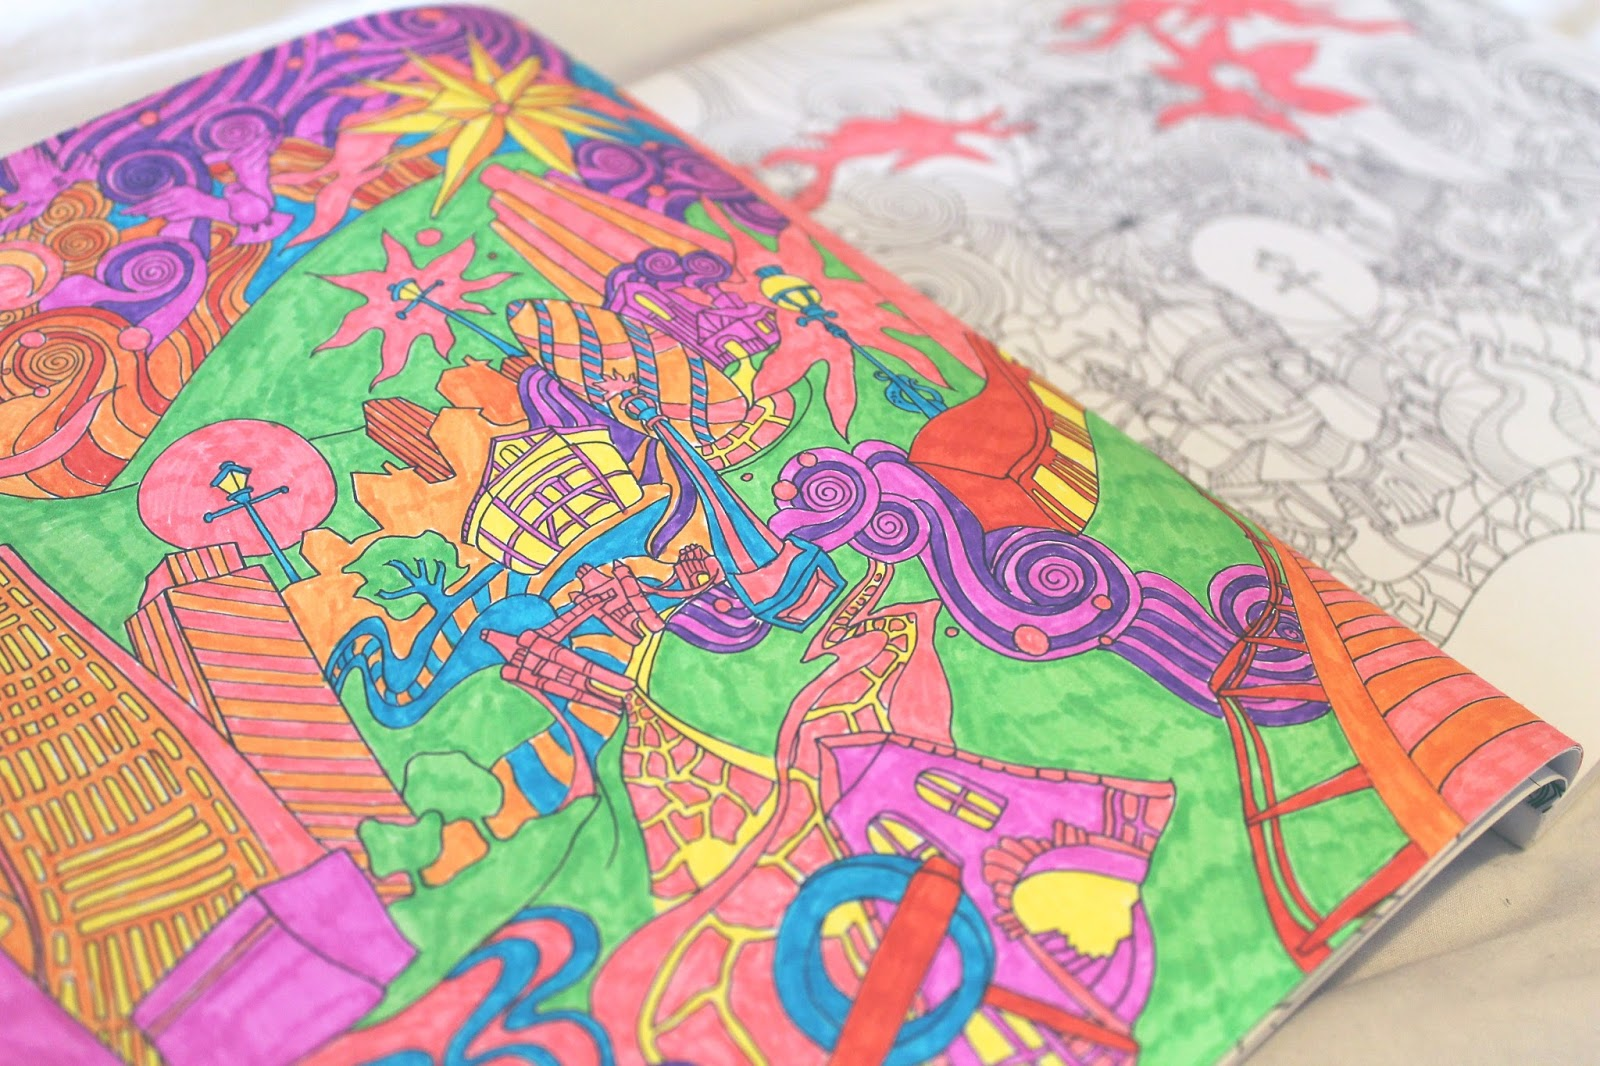 Th the magical city colouring in book - I M Sure Everyone Has Seen These Adult Colouring Books That Have Been Popping Up All Over The Place Lately And I Myself Have Been Looking Out For One